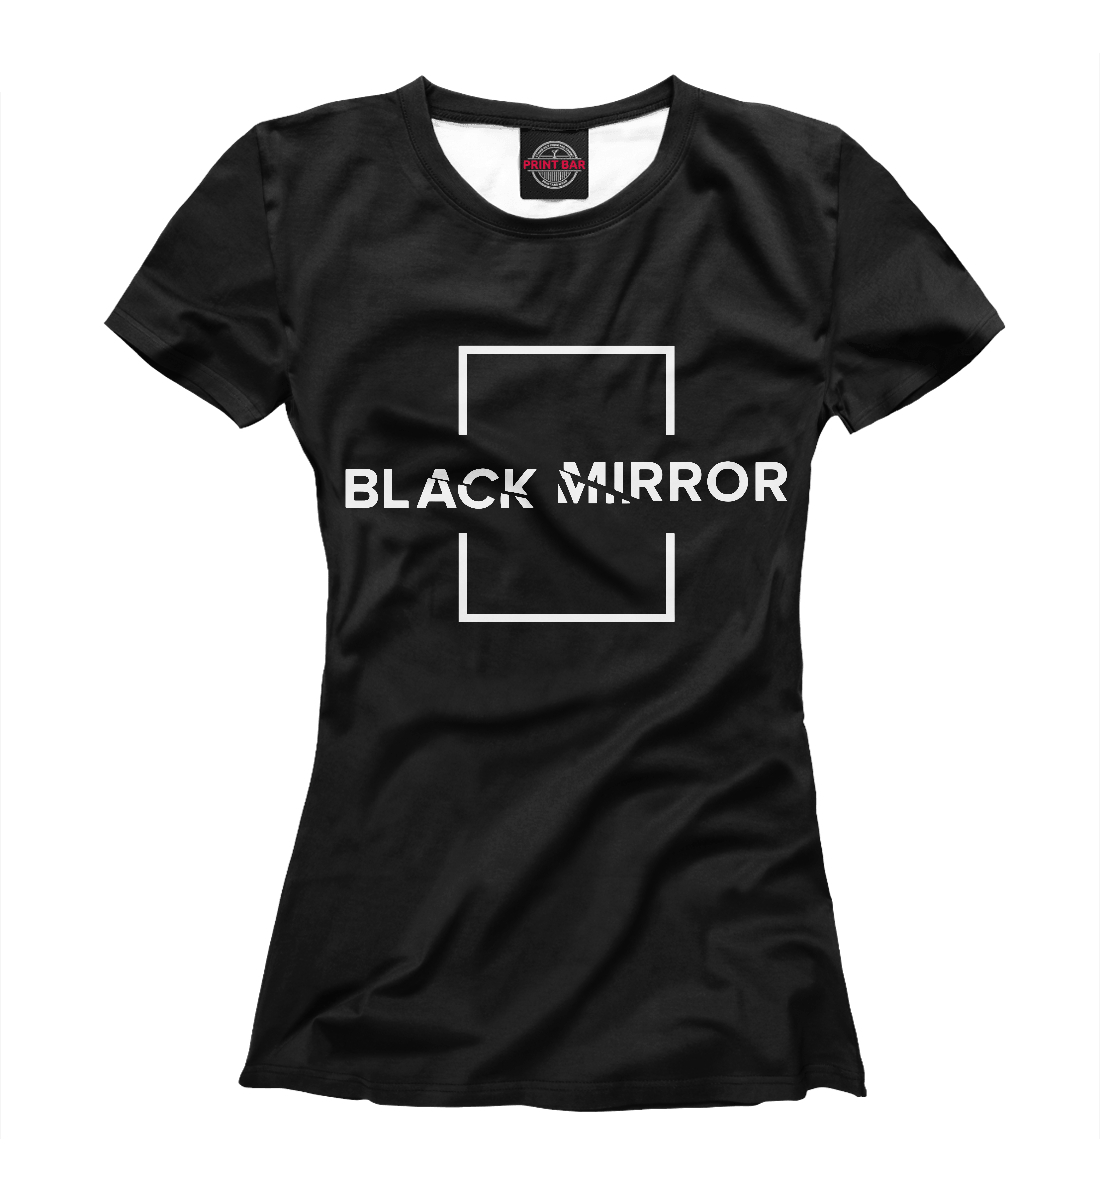 Купить Black Mirror, Printbar, Футболки, BLM-213621-fut-1